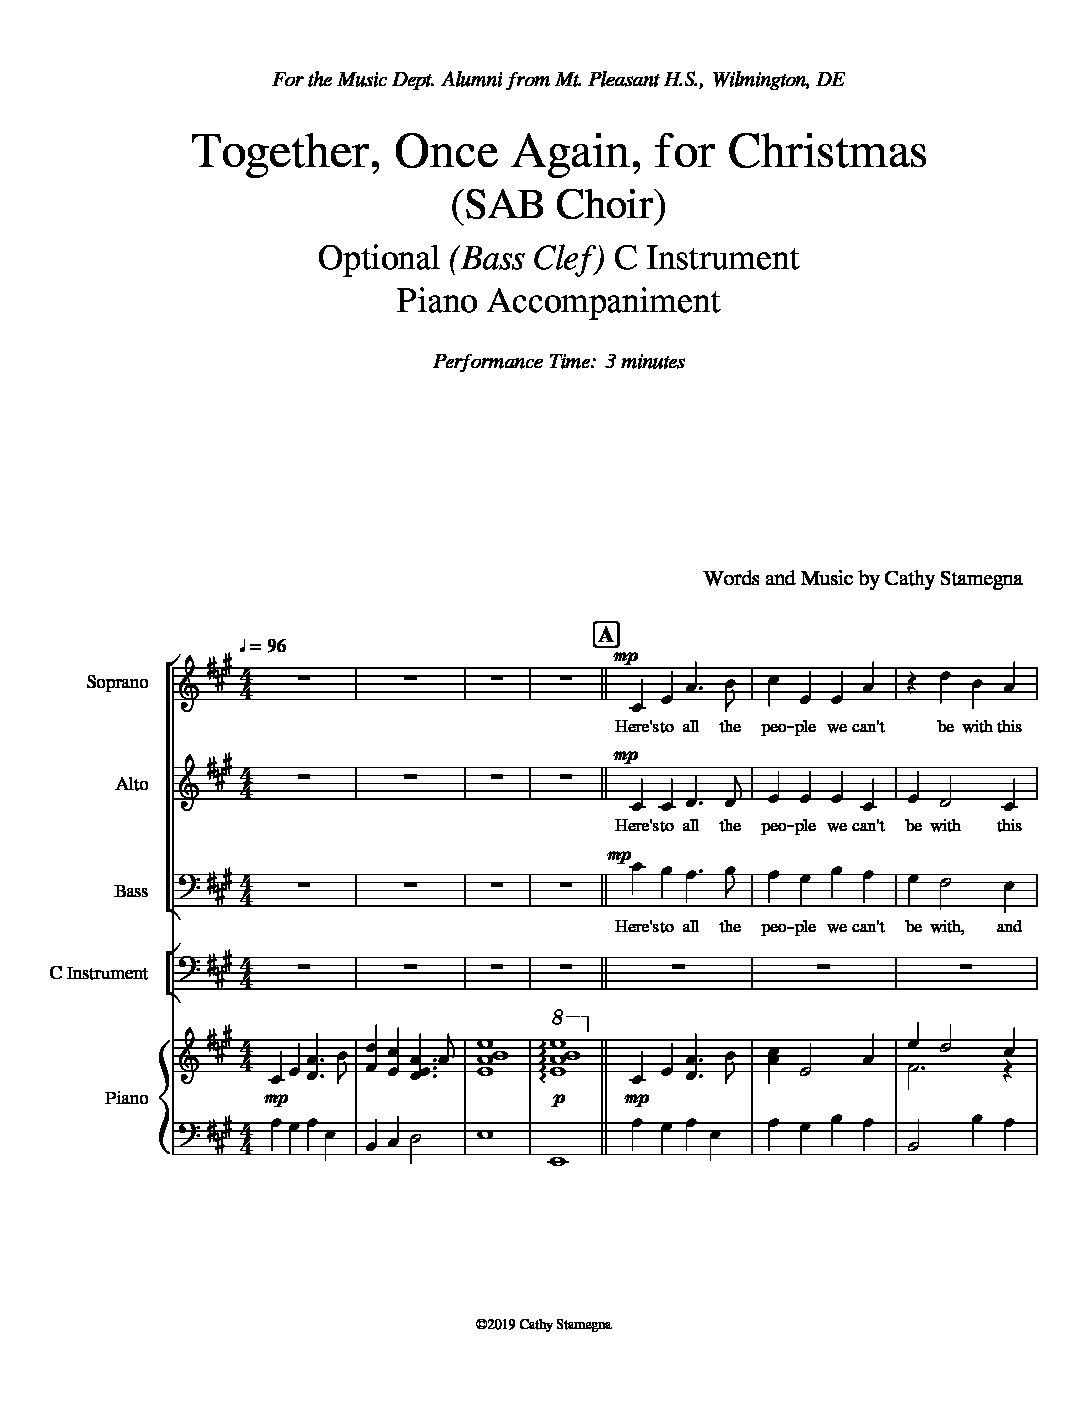 Together, Once Again, for Christmas (Optional C Instrument, Piano Accompaniment) for Unison, 2-Part, SAB, SSA, TTB Choir